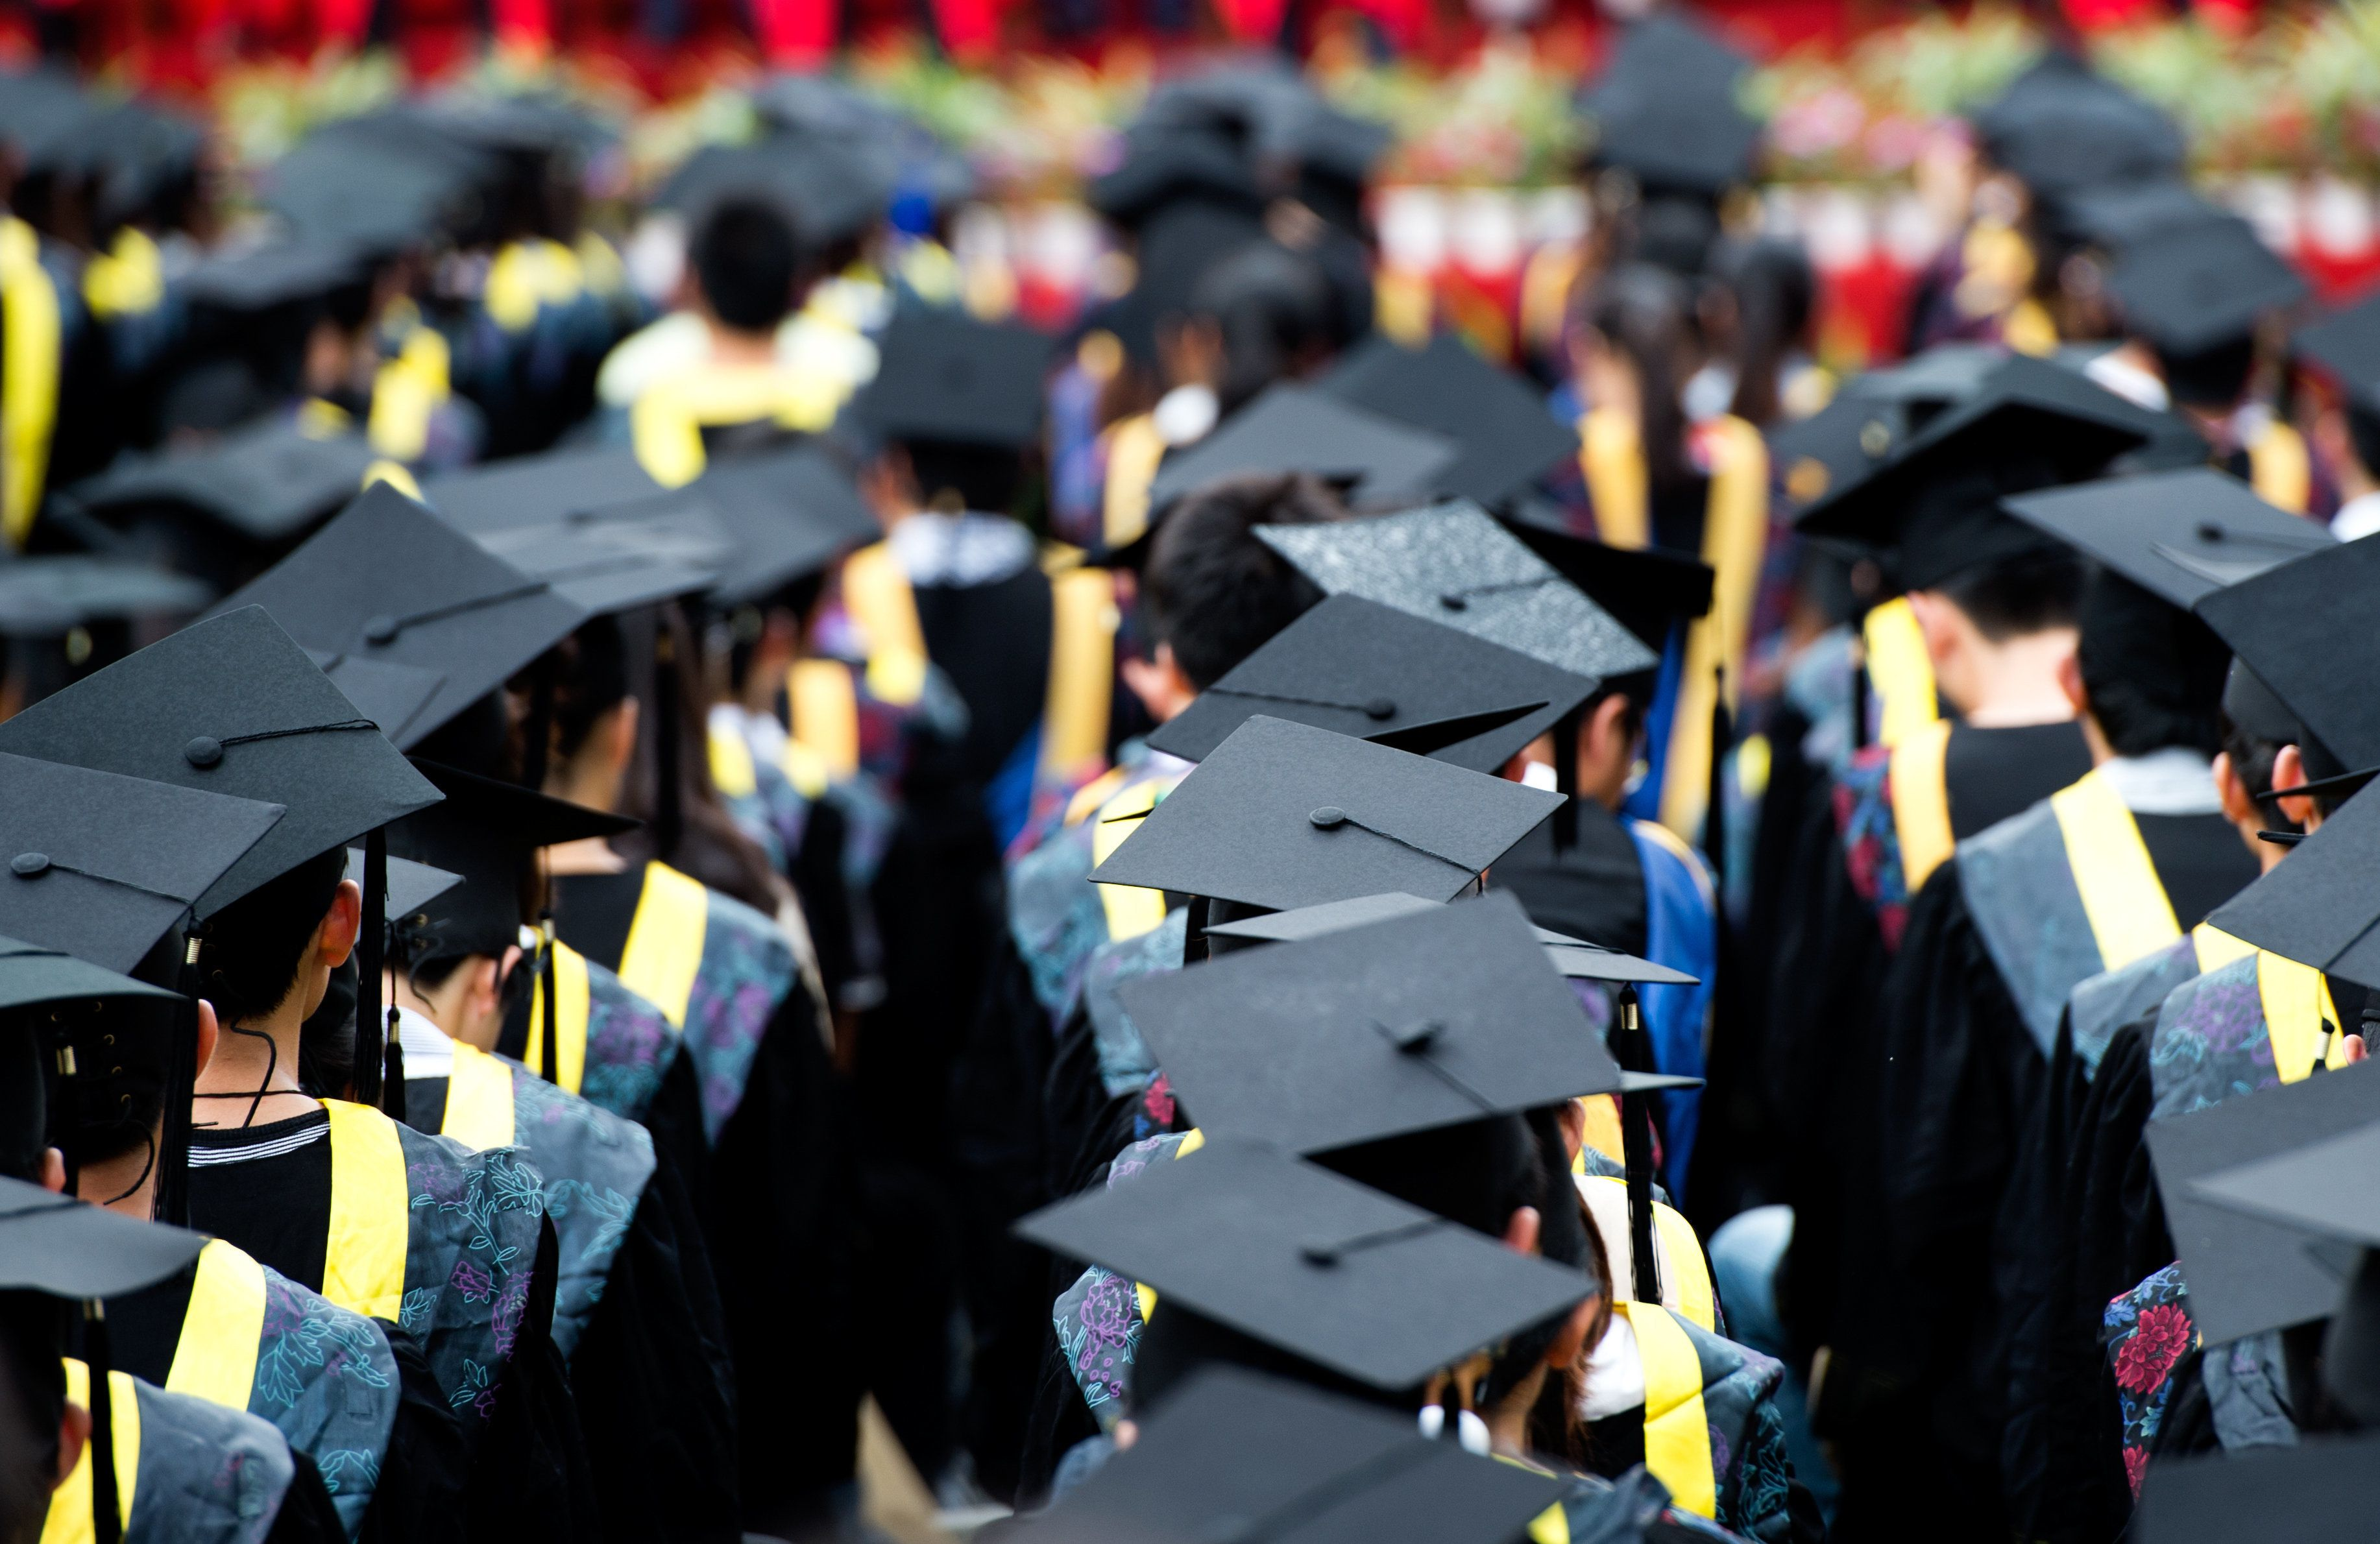 UK students say their degrees would be damaged if international student numbers were